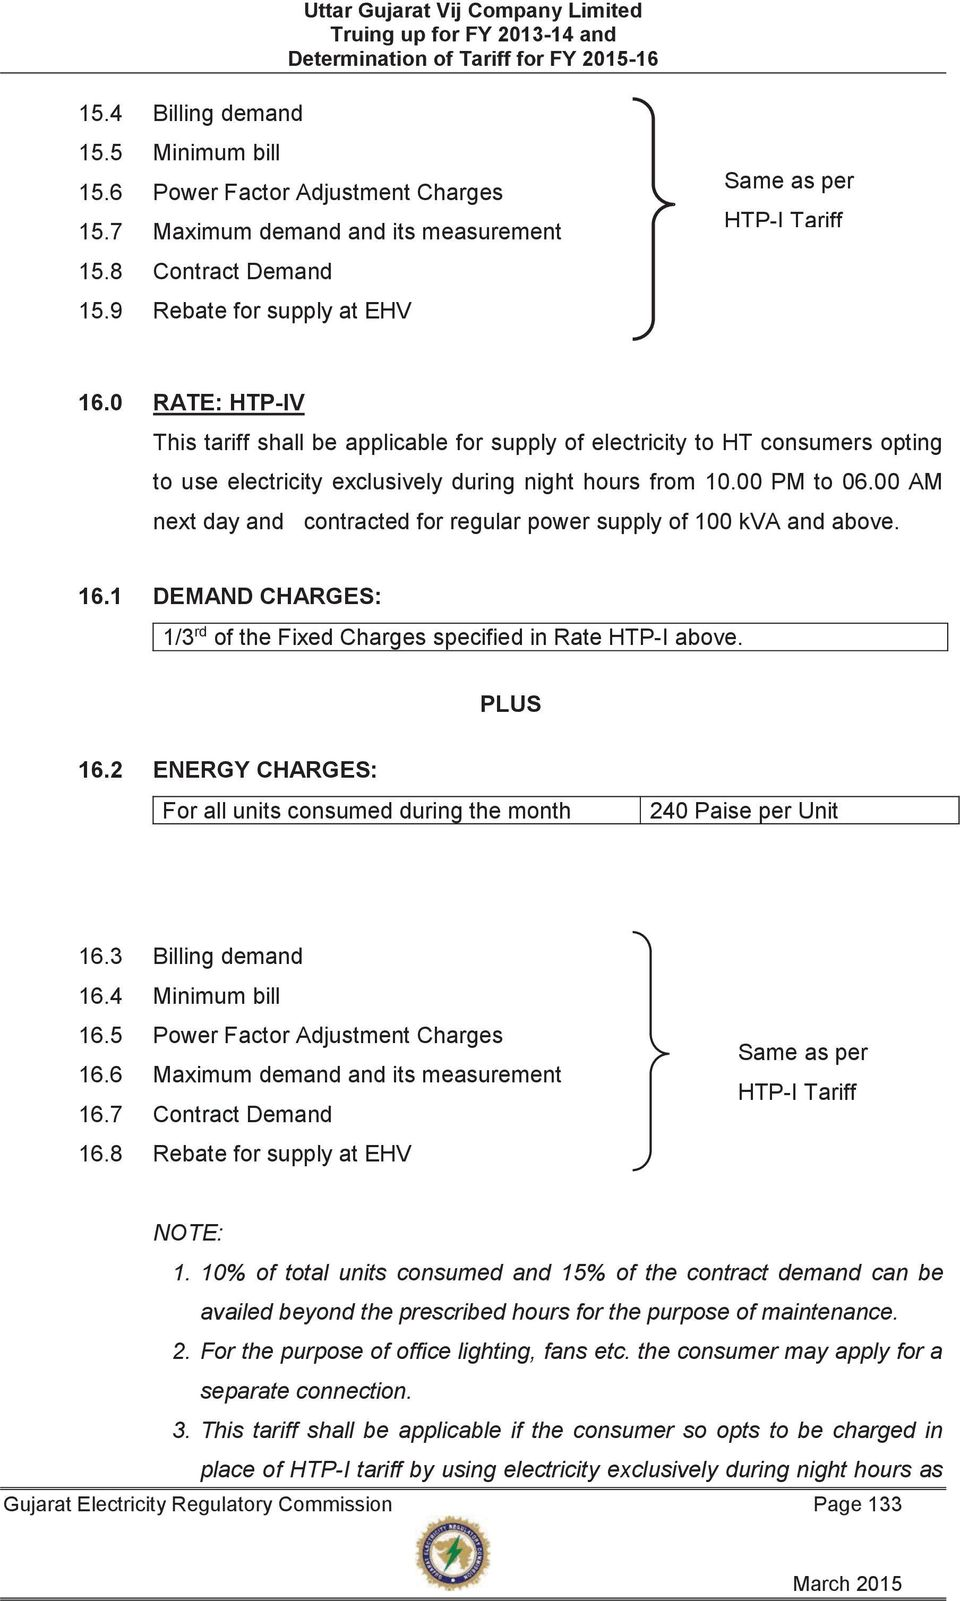 00 AM next day and contracted for regular power supply of 100 kva and above. 16.1 DEMAND CHARGES: 1/3 rd of the Fixed Charges specified in Rate HTP-I above. 16.2 ENERGY CHARGES: For all units consumed during the month 240 Paise per Unit 16.